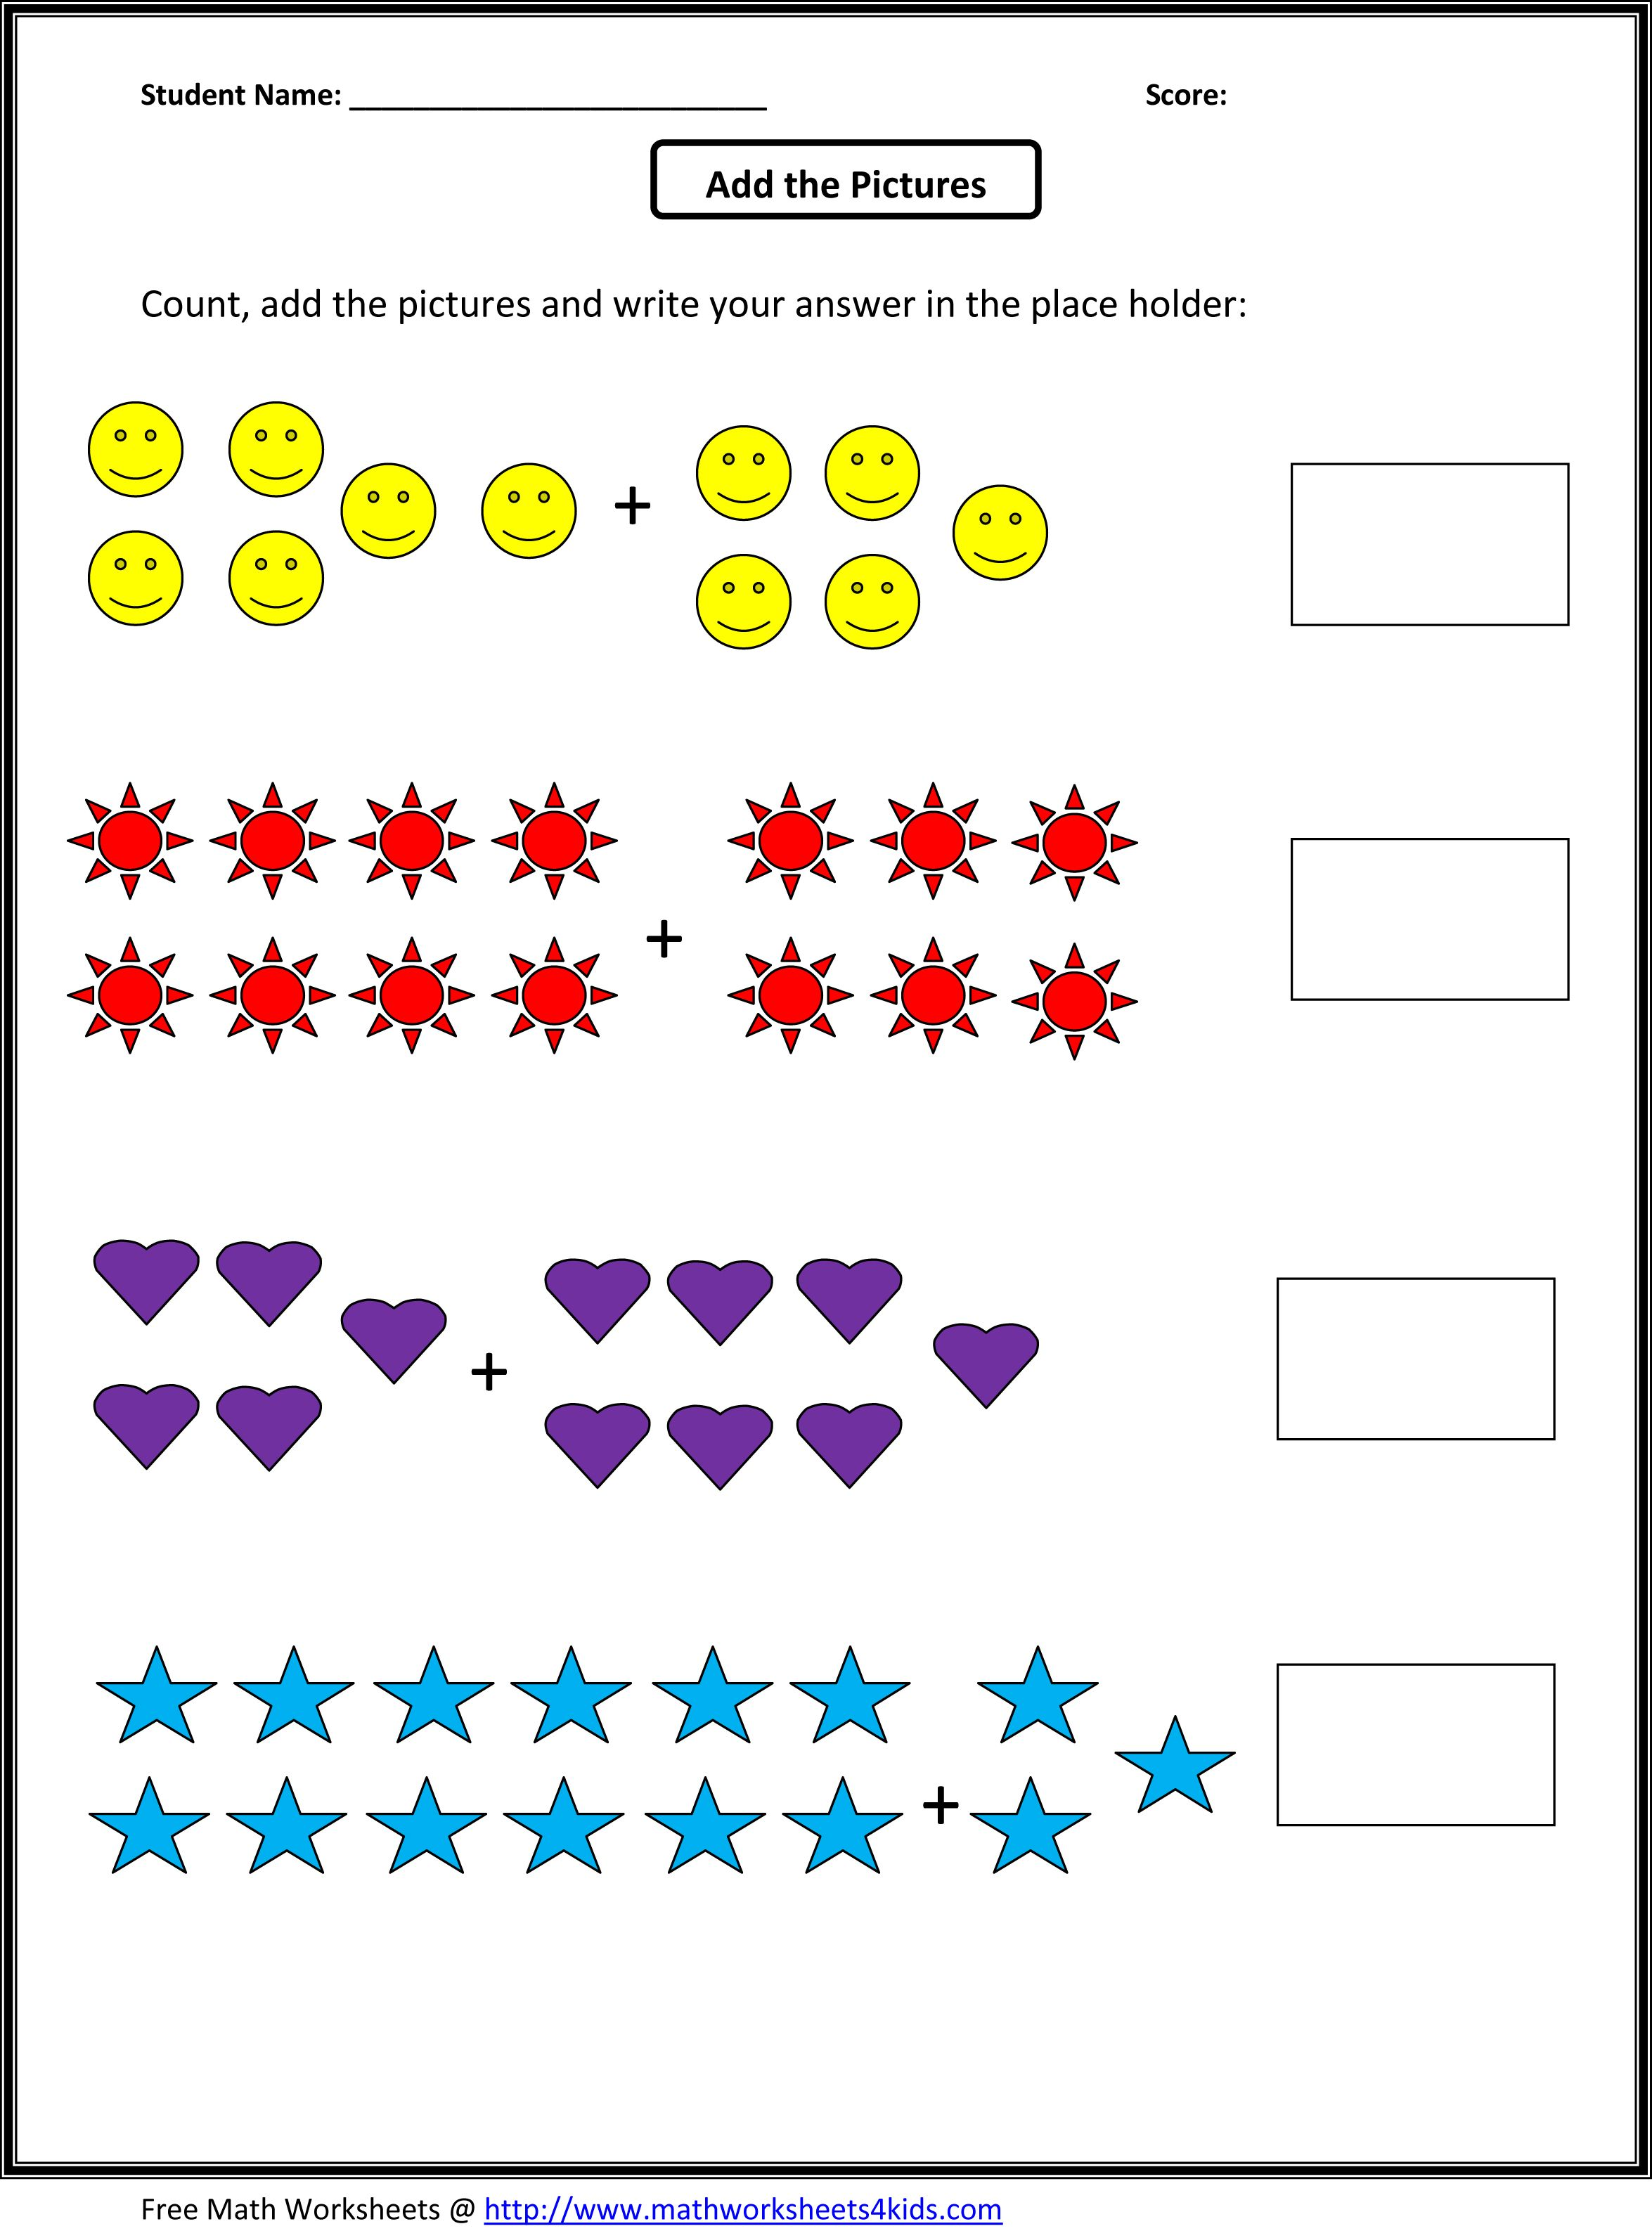 Uncategorized Math Grade 1 Worksheet grade 1 addition math worksheets first worksheets